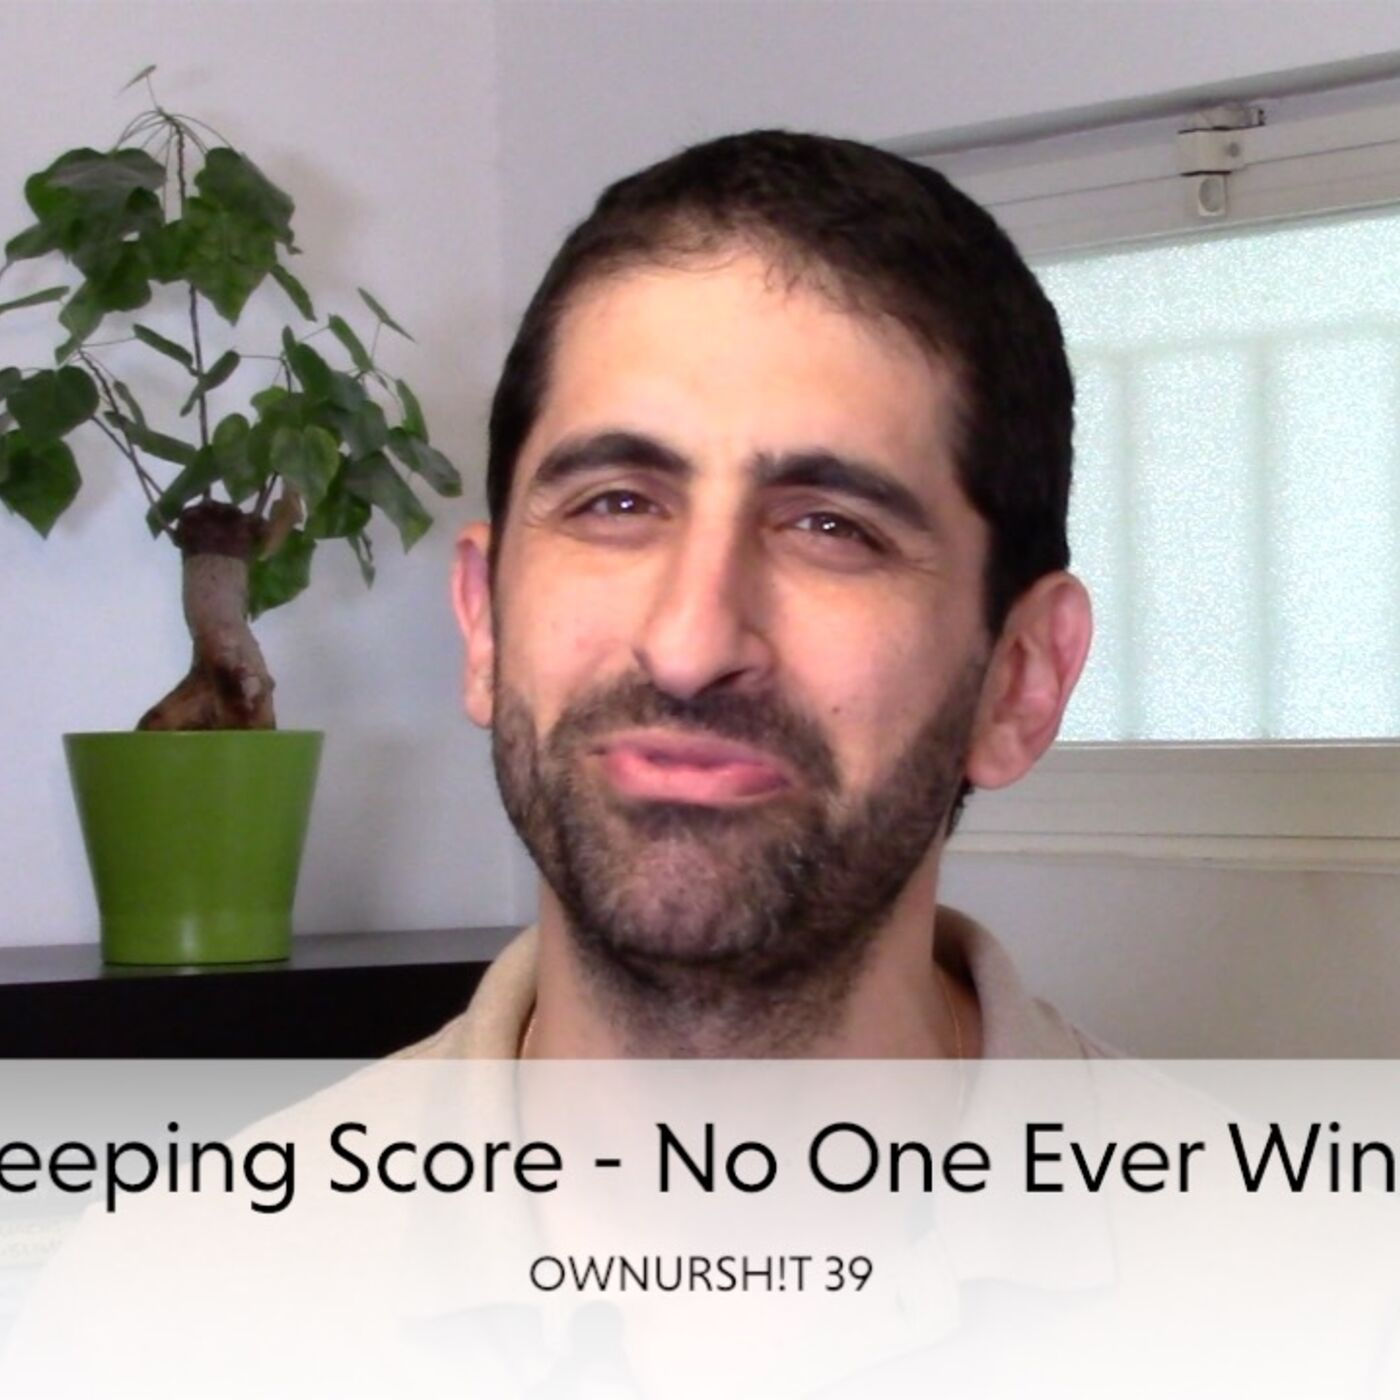 OWNURSH!T 39 - Keeping Score - No One Ever Wins.